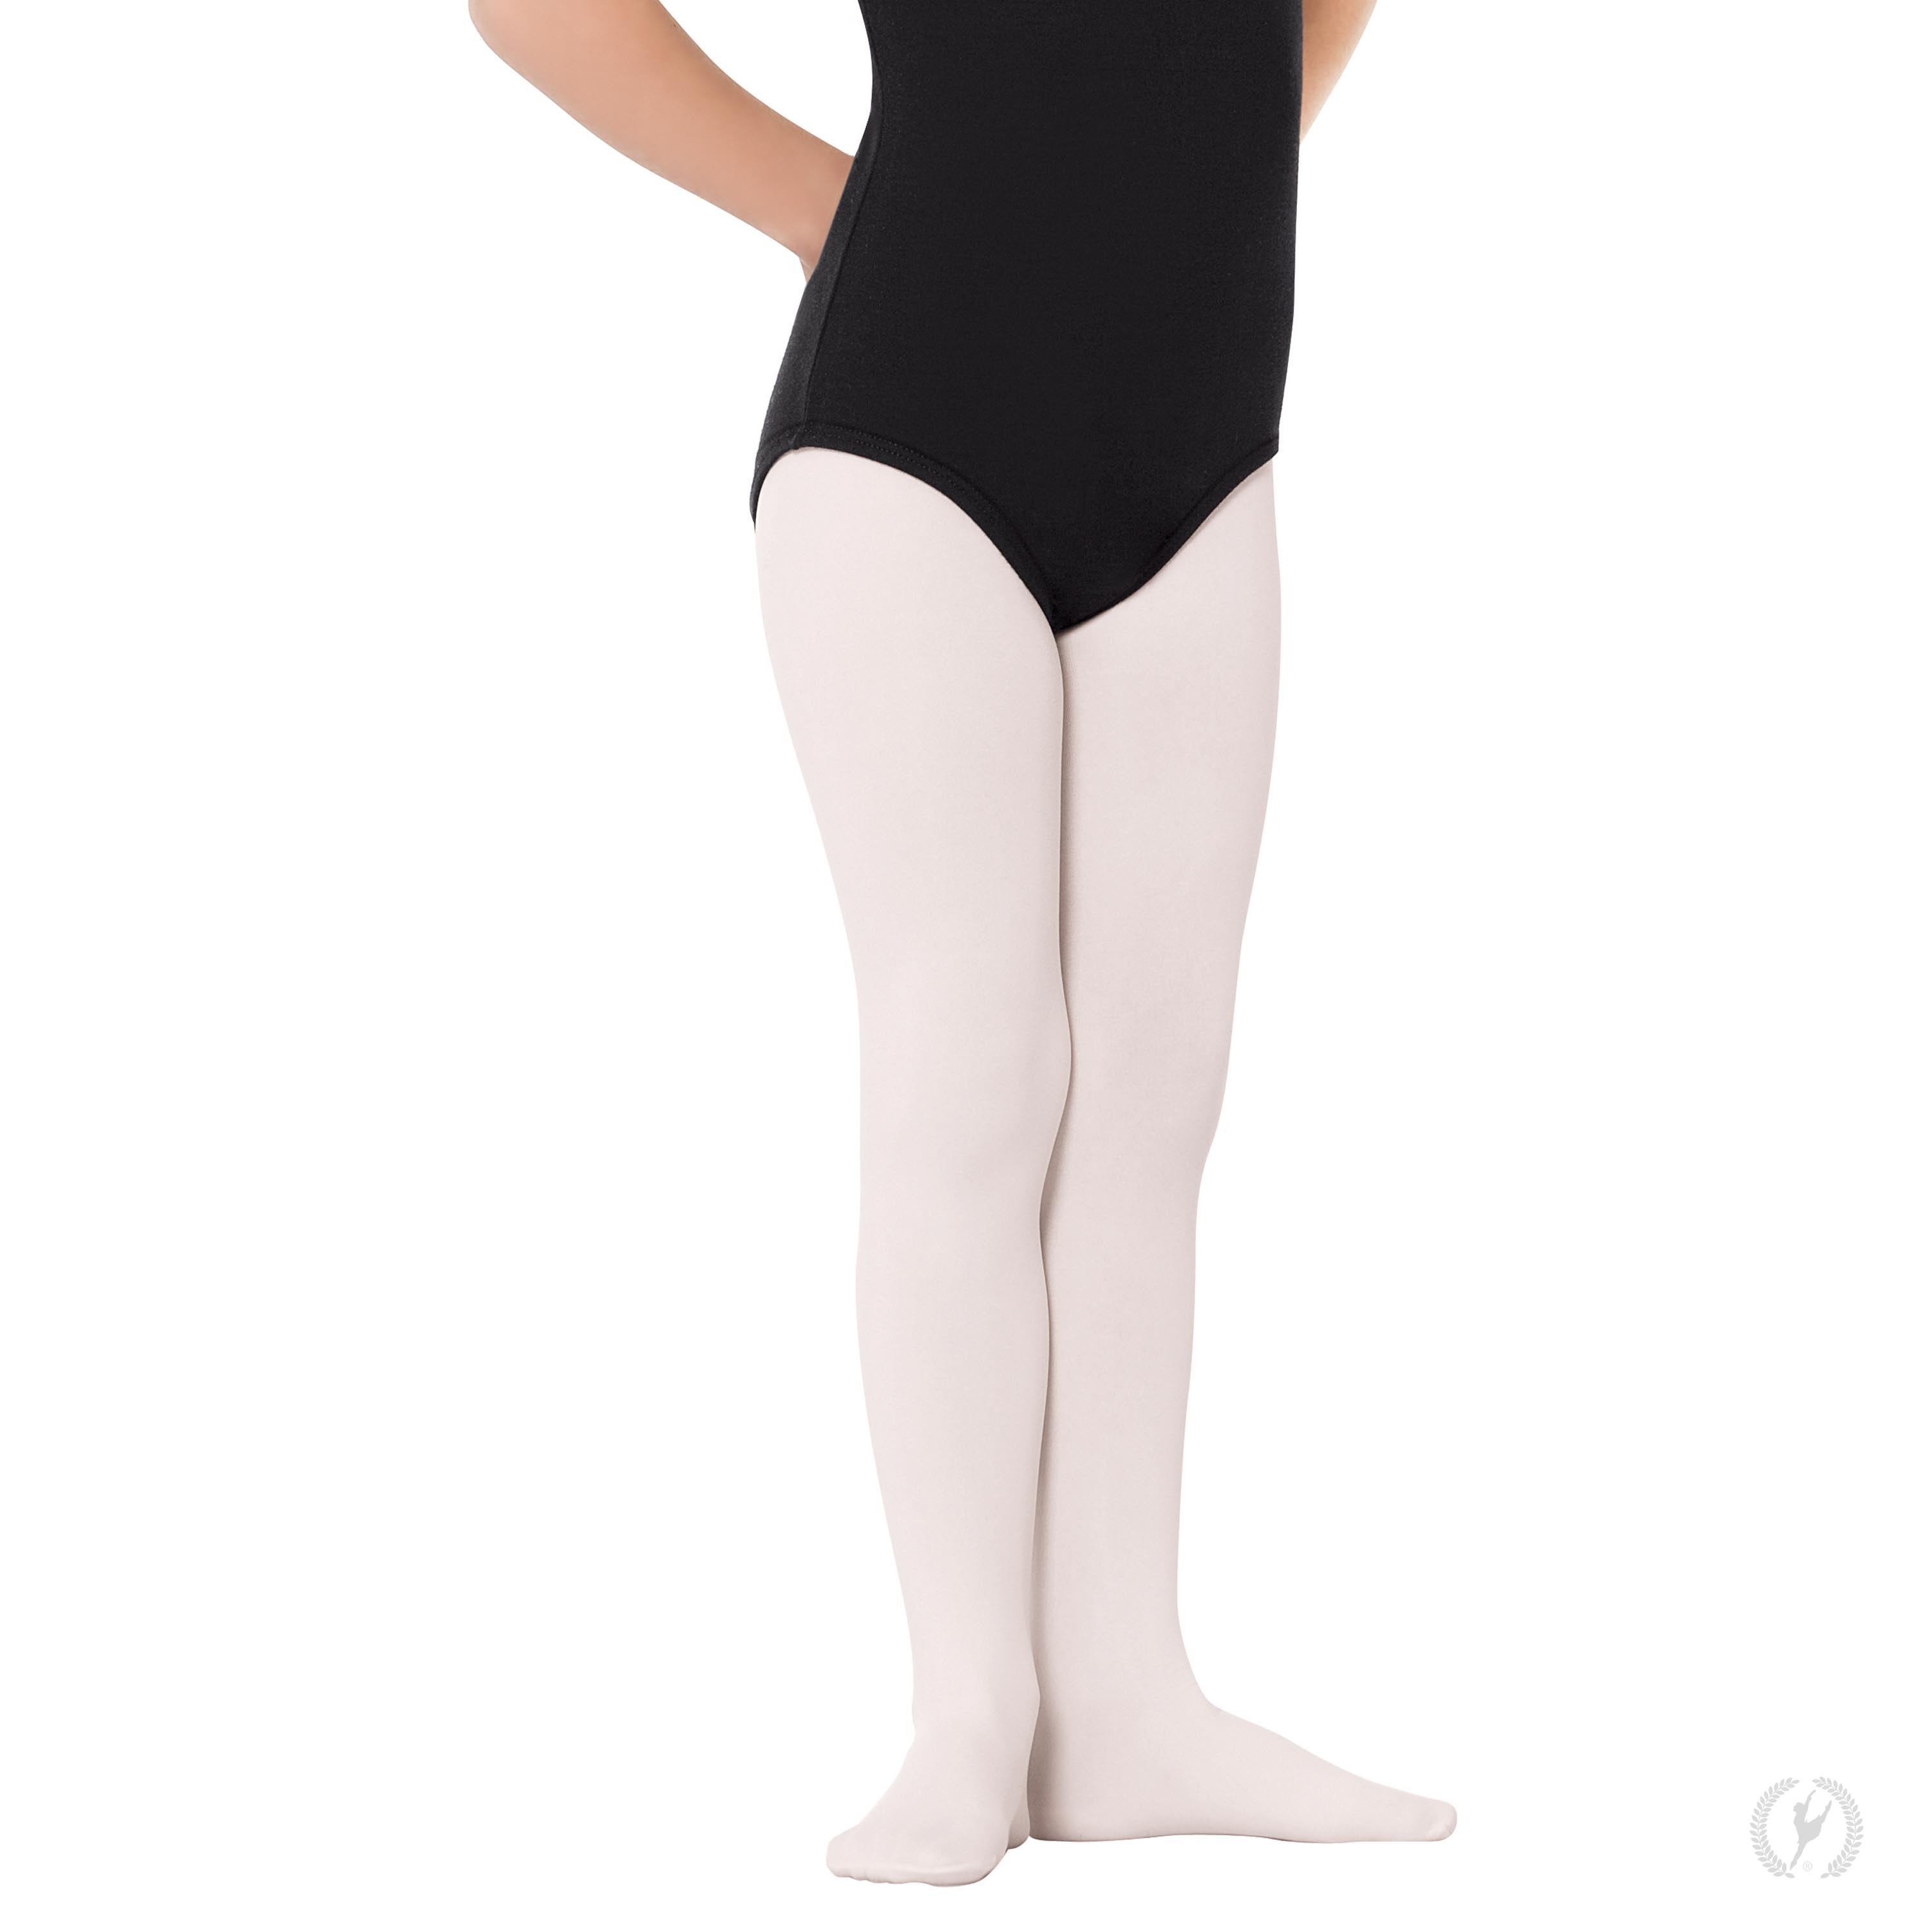 8b6845b59e3345 215c - Eurotard Girls Non-Run Footed Tights with Soft Knit Waistband by  EuroSkins